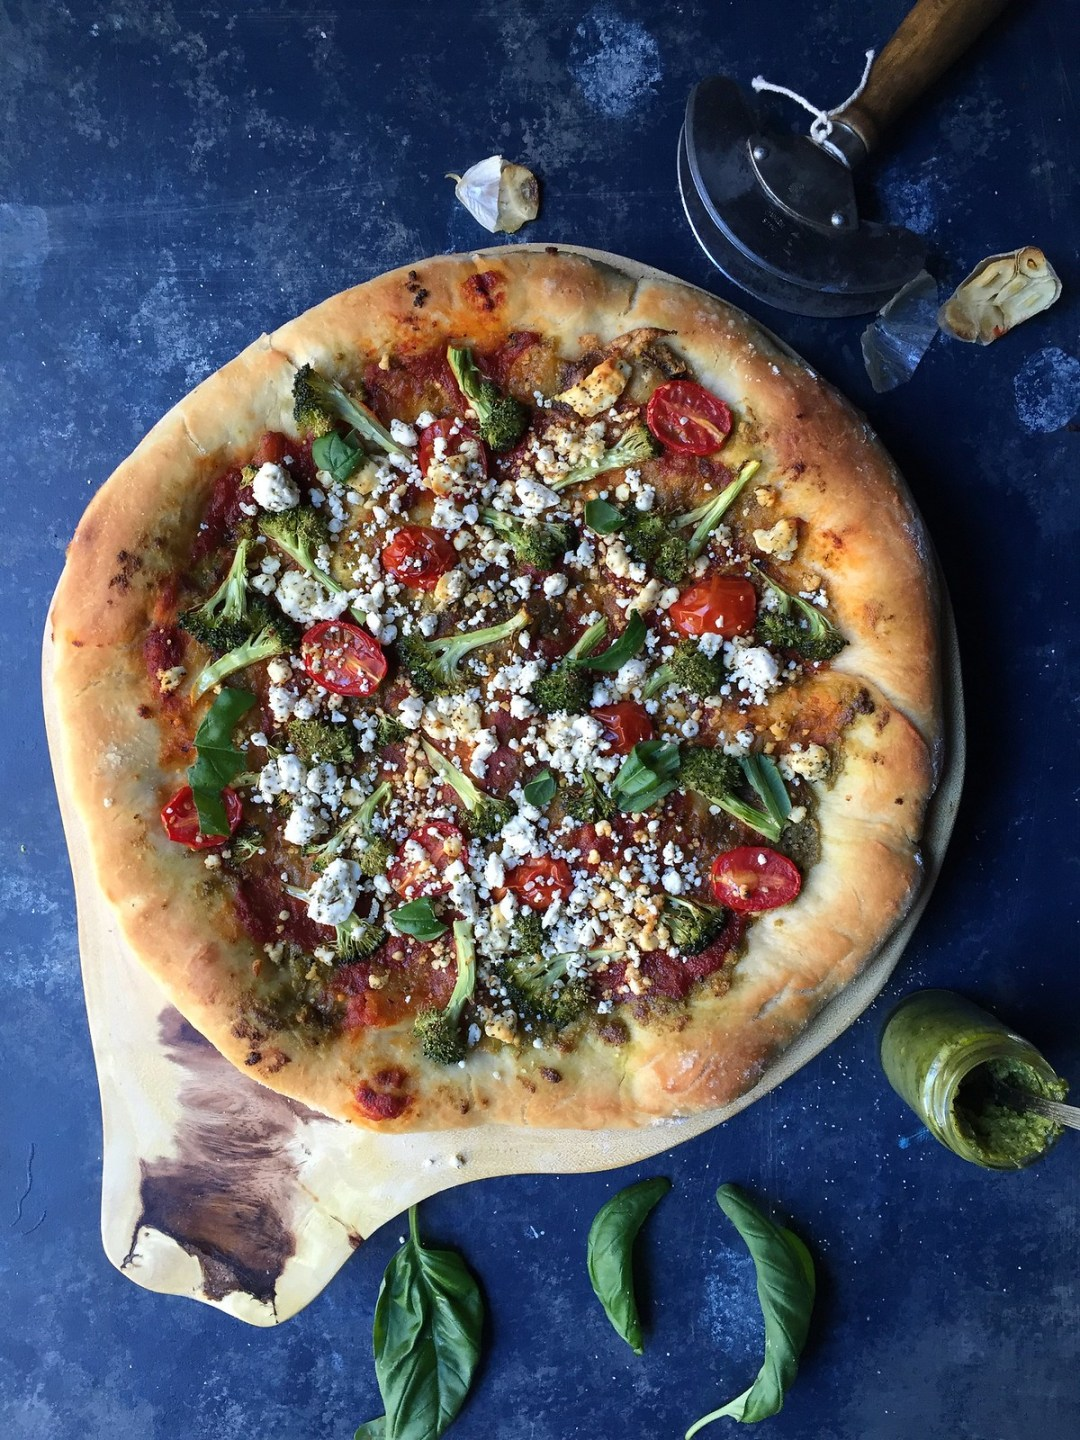 30 minute Broccili Pizza with Rosted Garlic Pesto-Feta Cheese